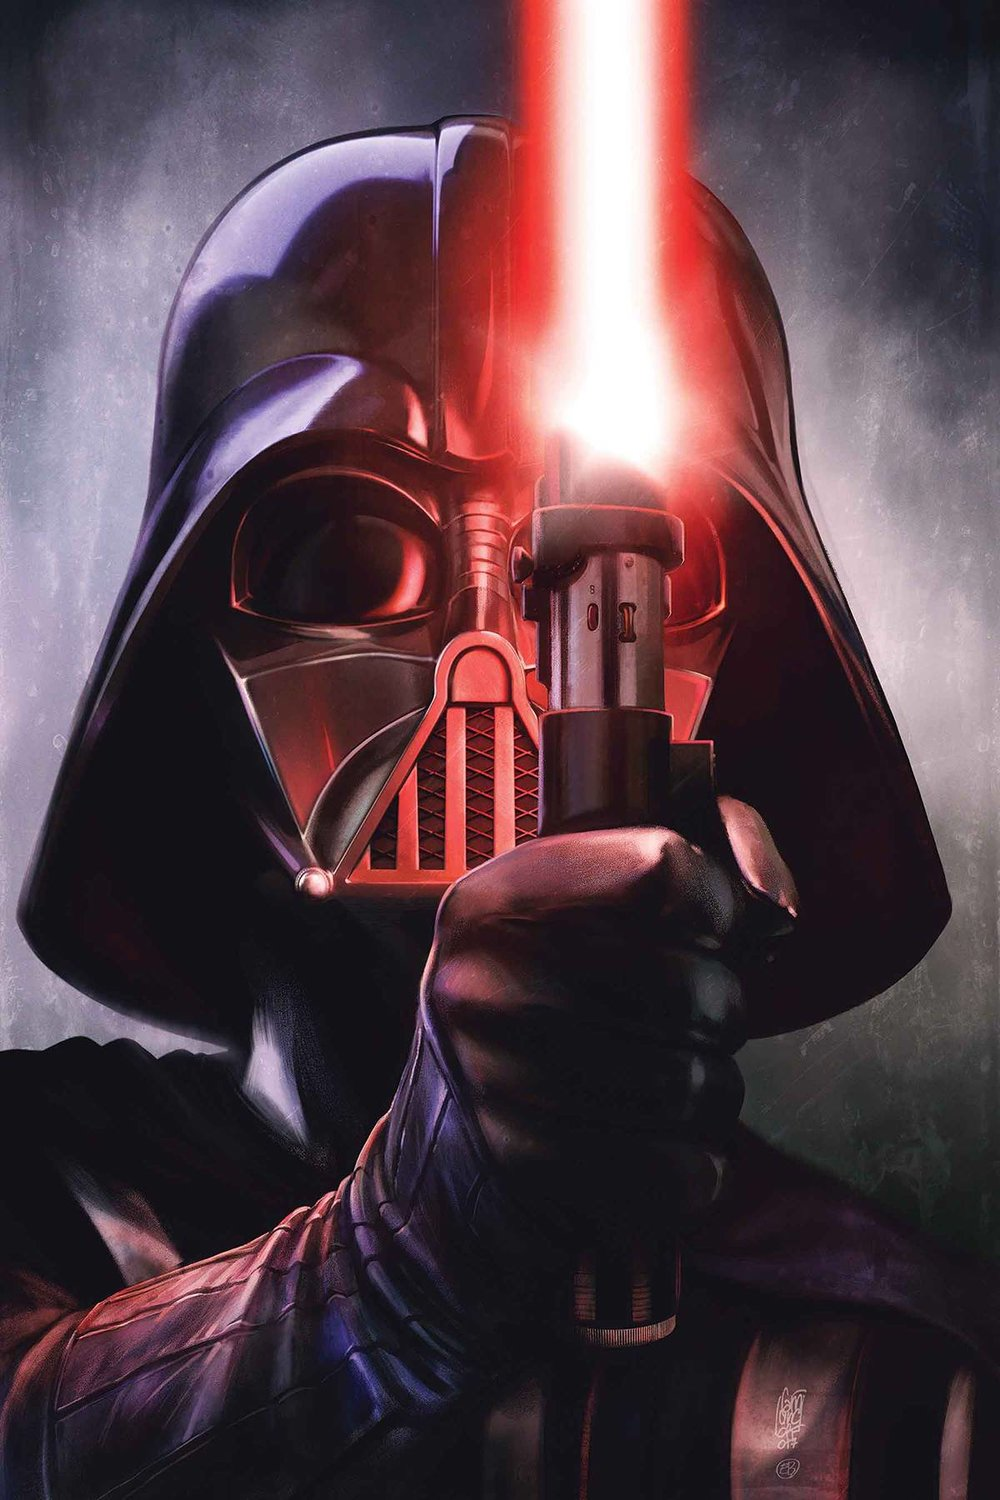 STAR WARS DARTH VADER 12.jpg